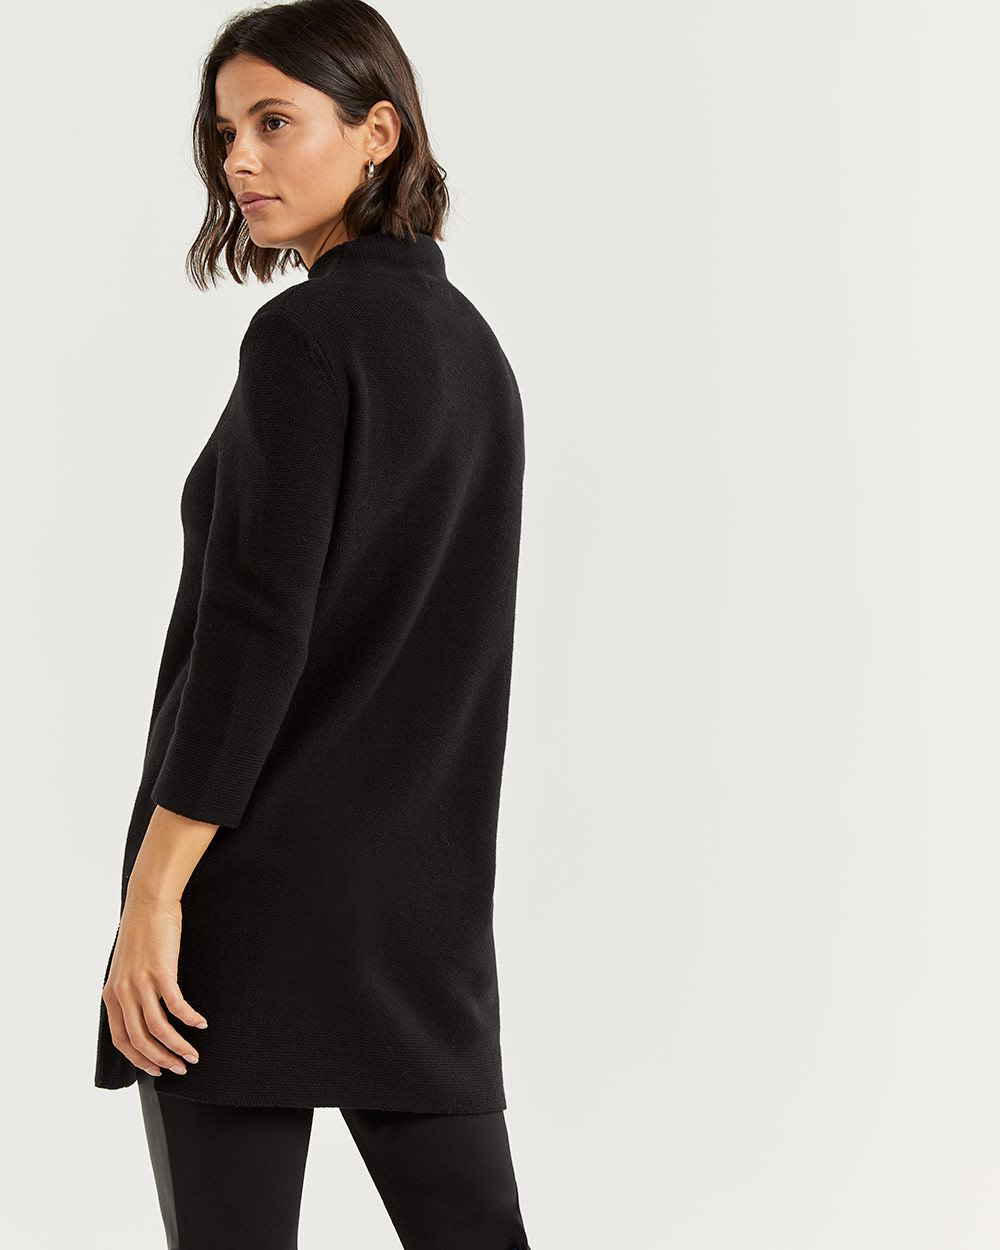 3/4 Sleeve Mock Neck Tunic with Embroidery